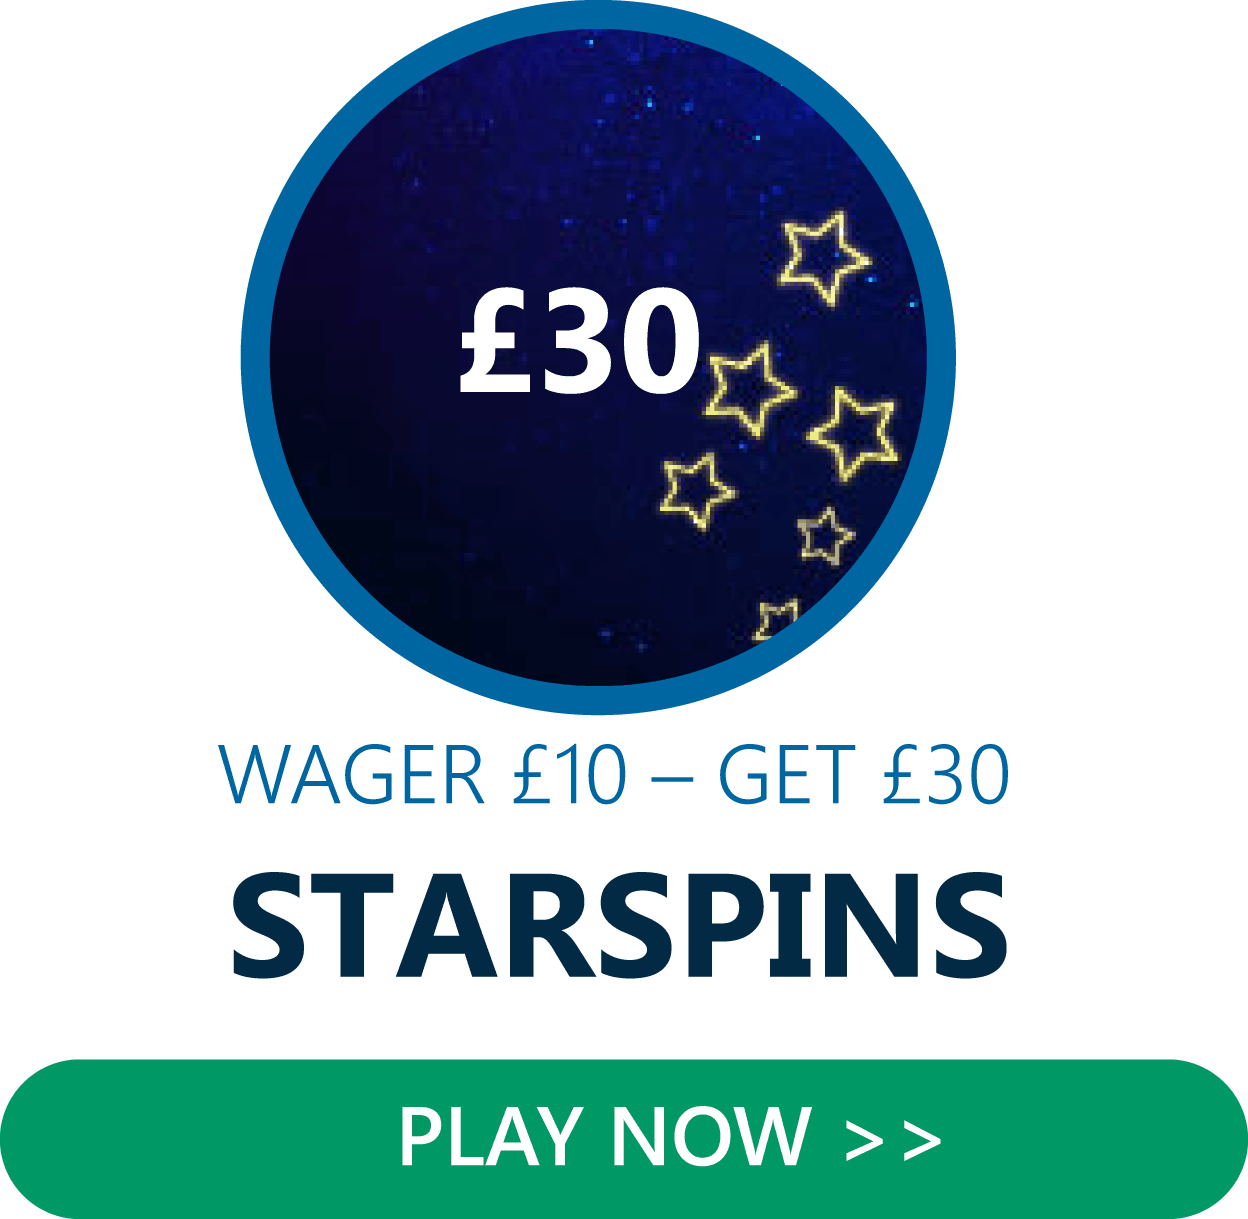 Starspins has a lot of slots